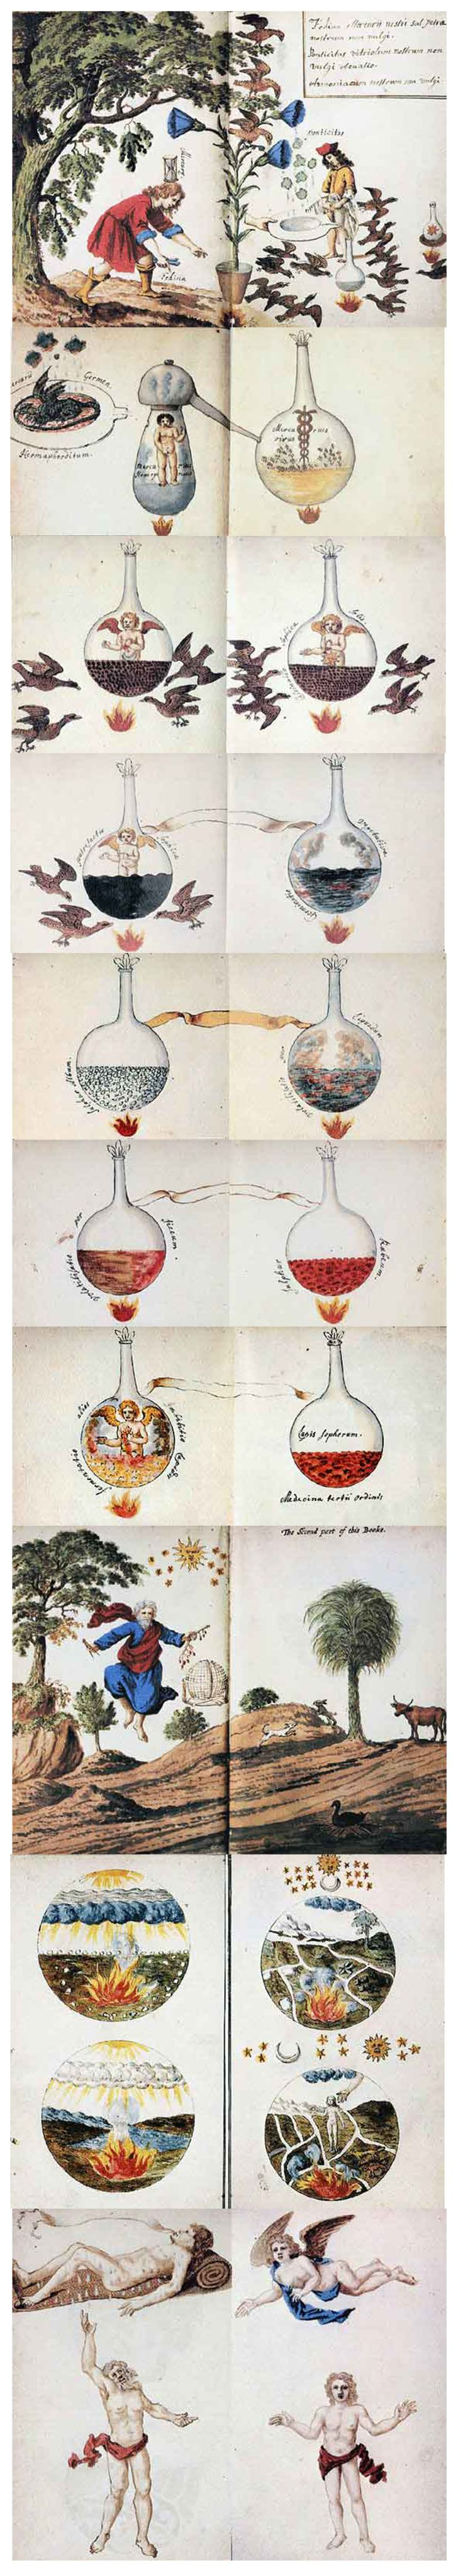 Des illustrations de manuscrits d'alchimie